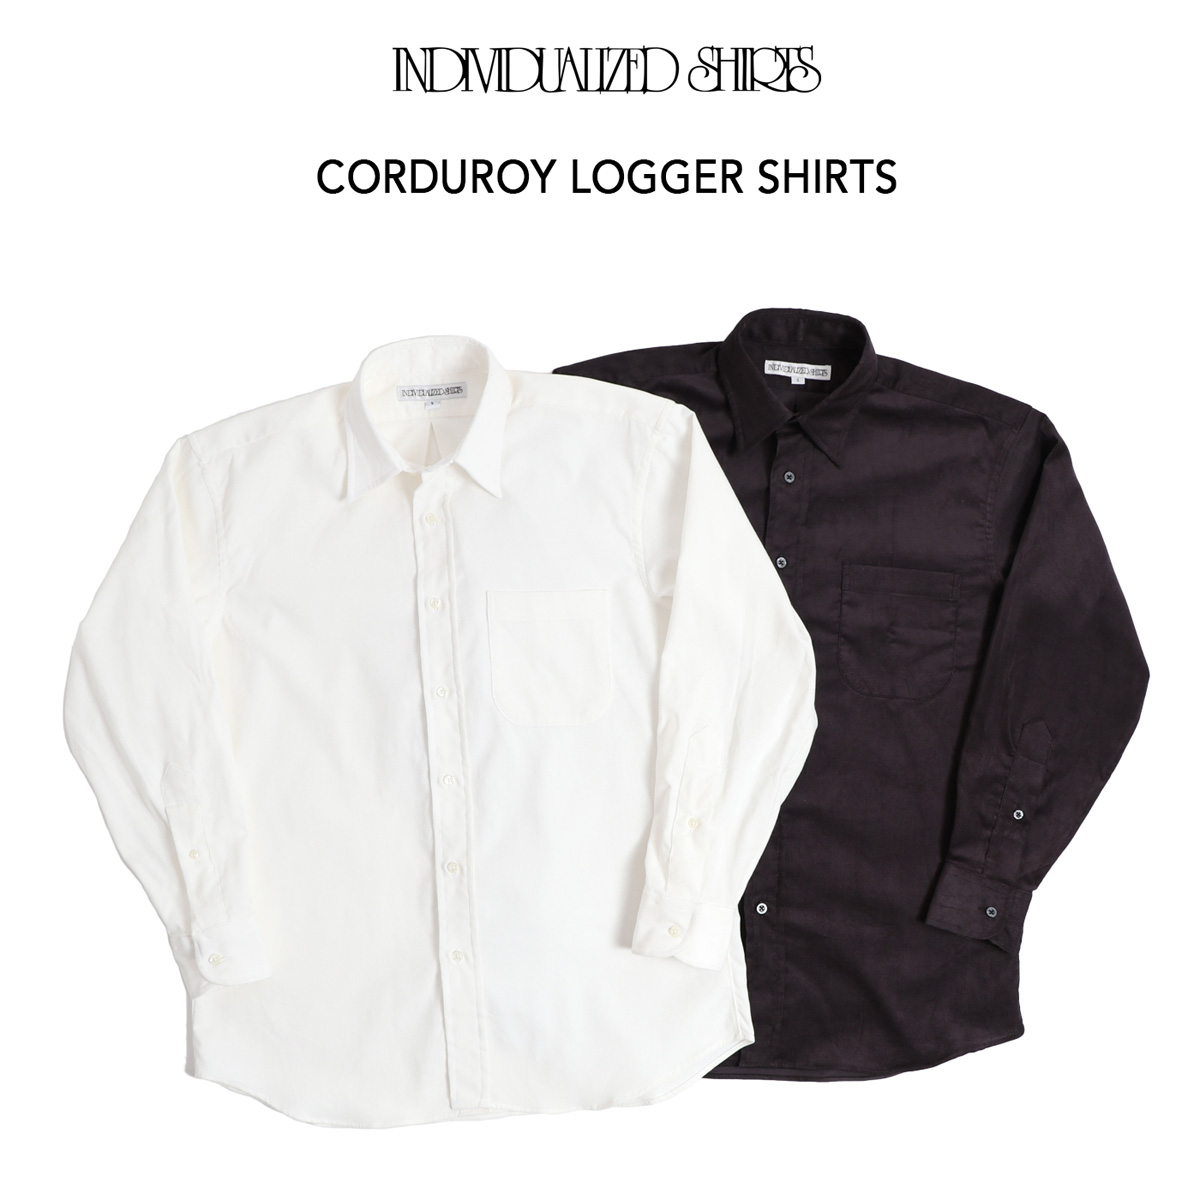 INDIVIDUALIZED SHIRTS コーデュロイ ロガーシャツ 全2色 Corduroy Logger Shirts Classic Fit 100% Cotton